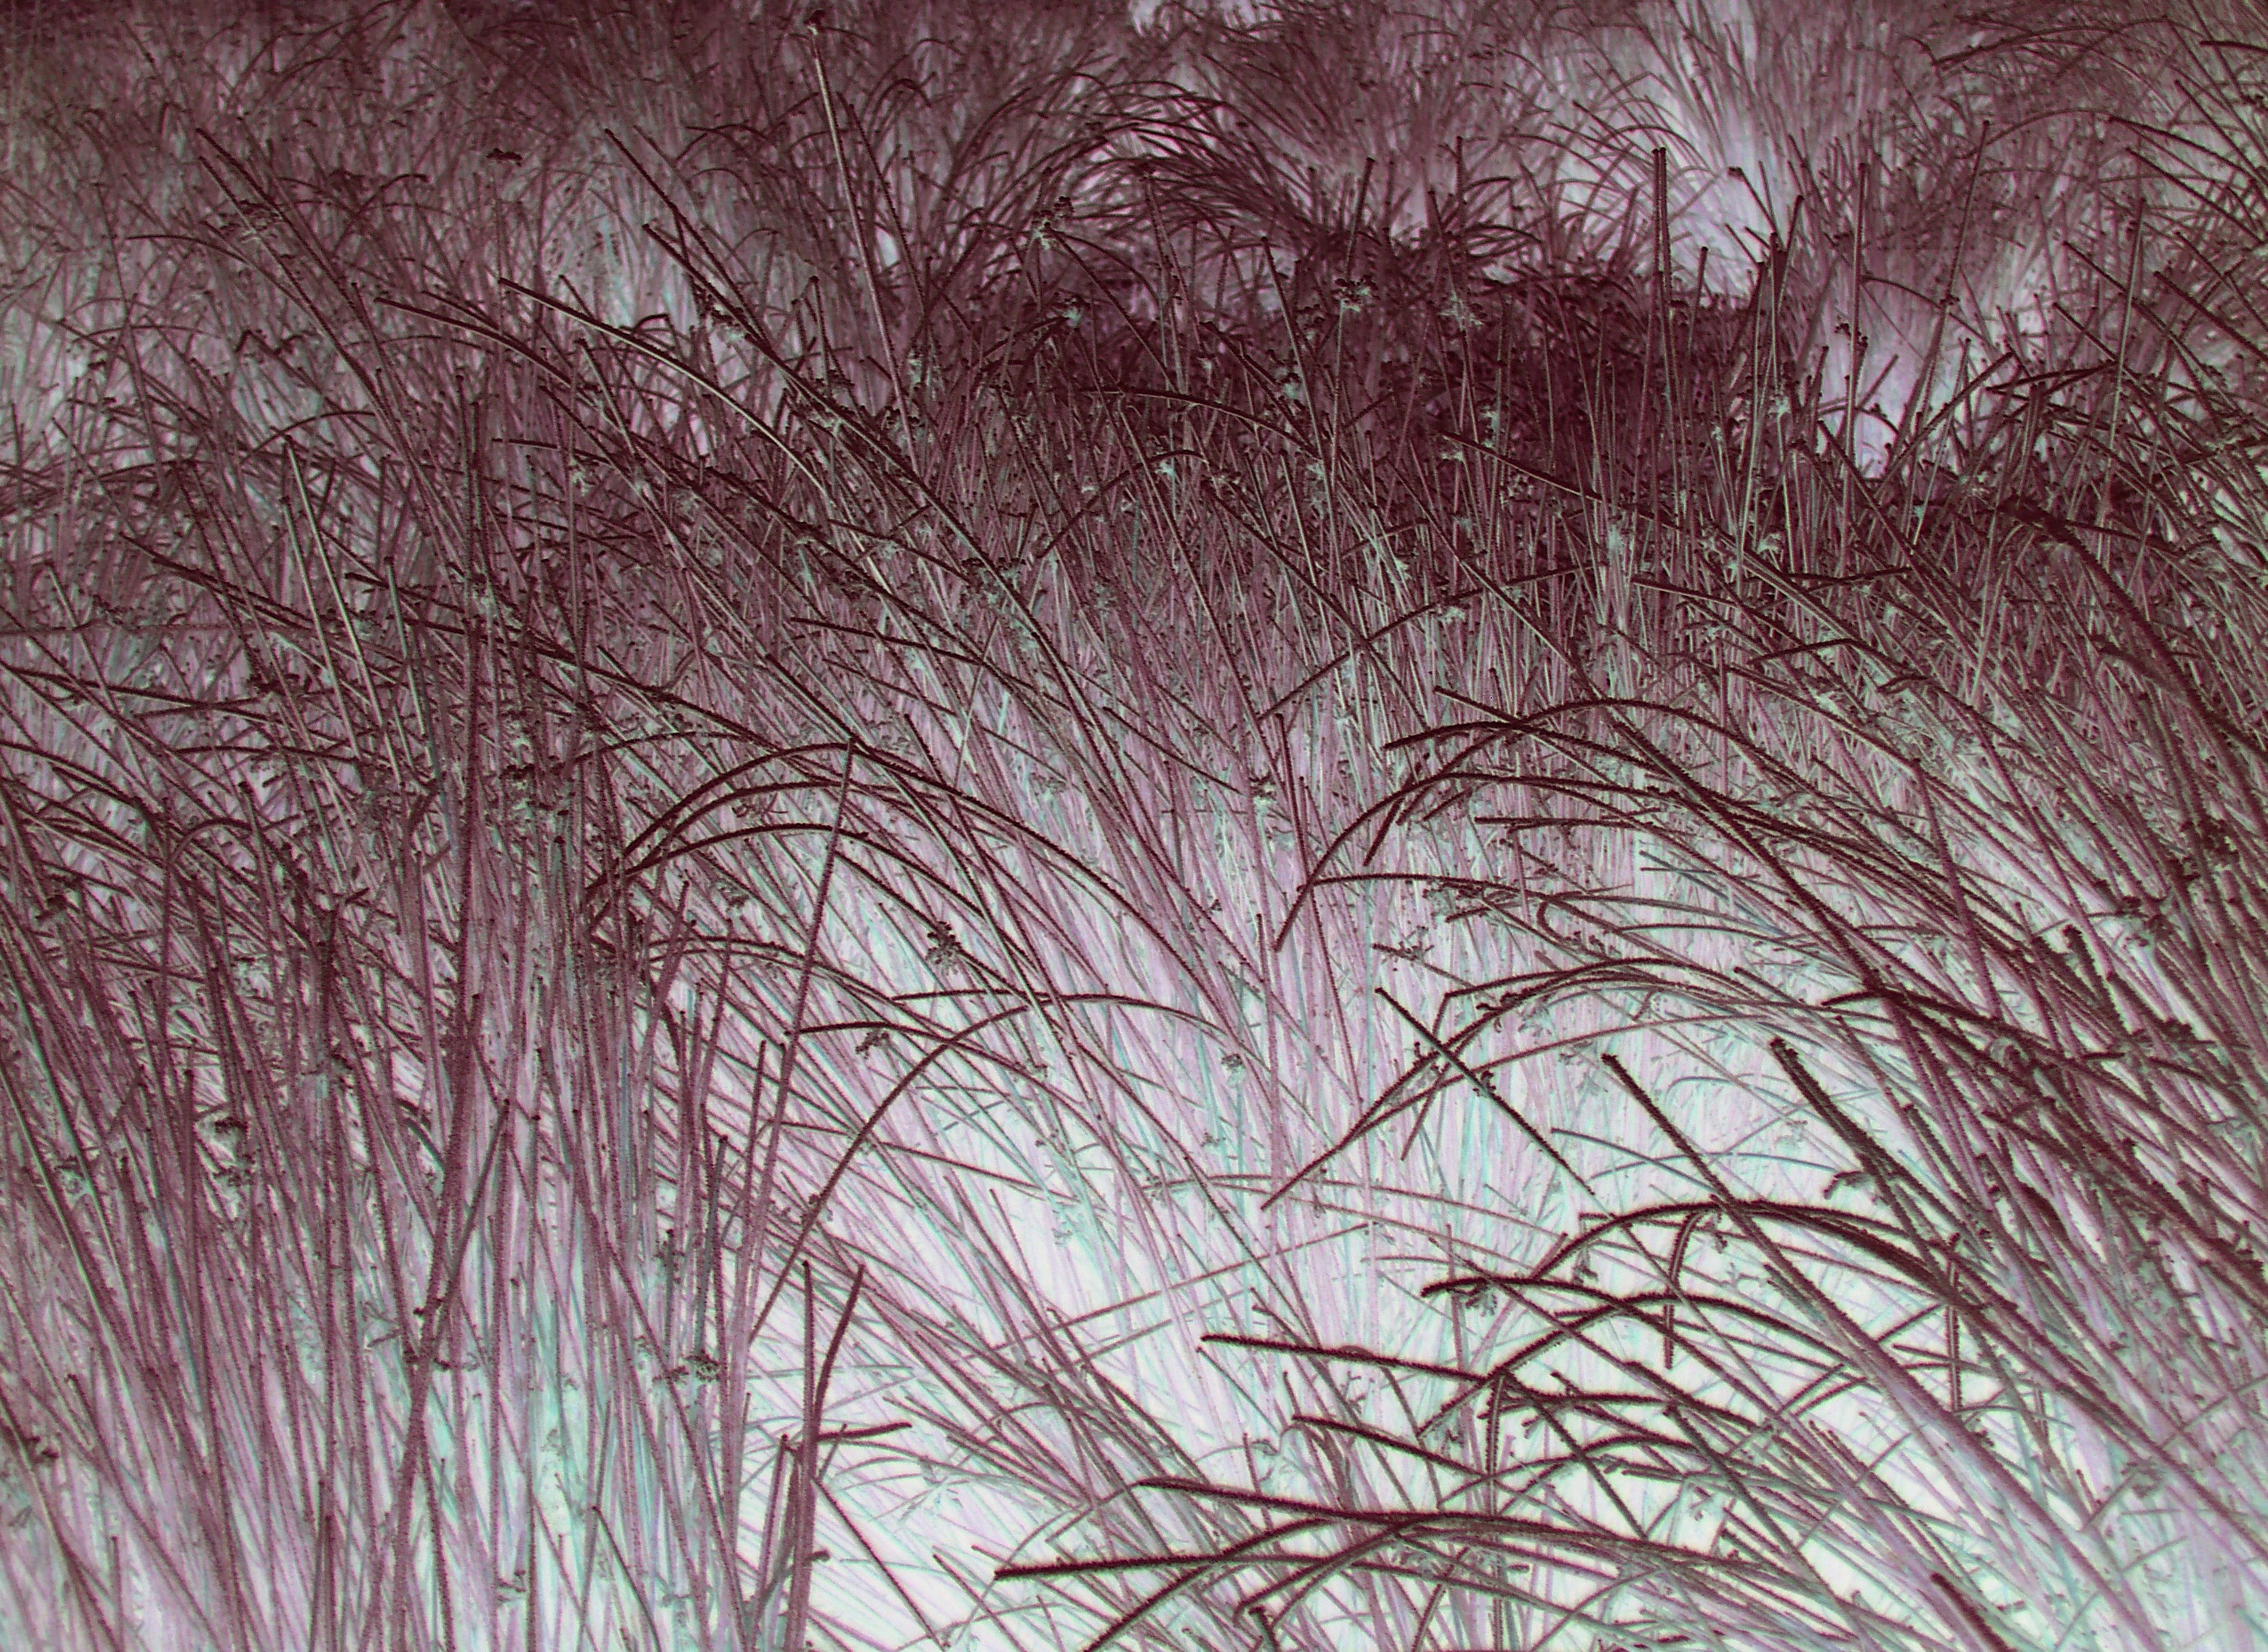 surreal colourised image of long grass